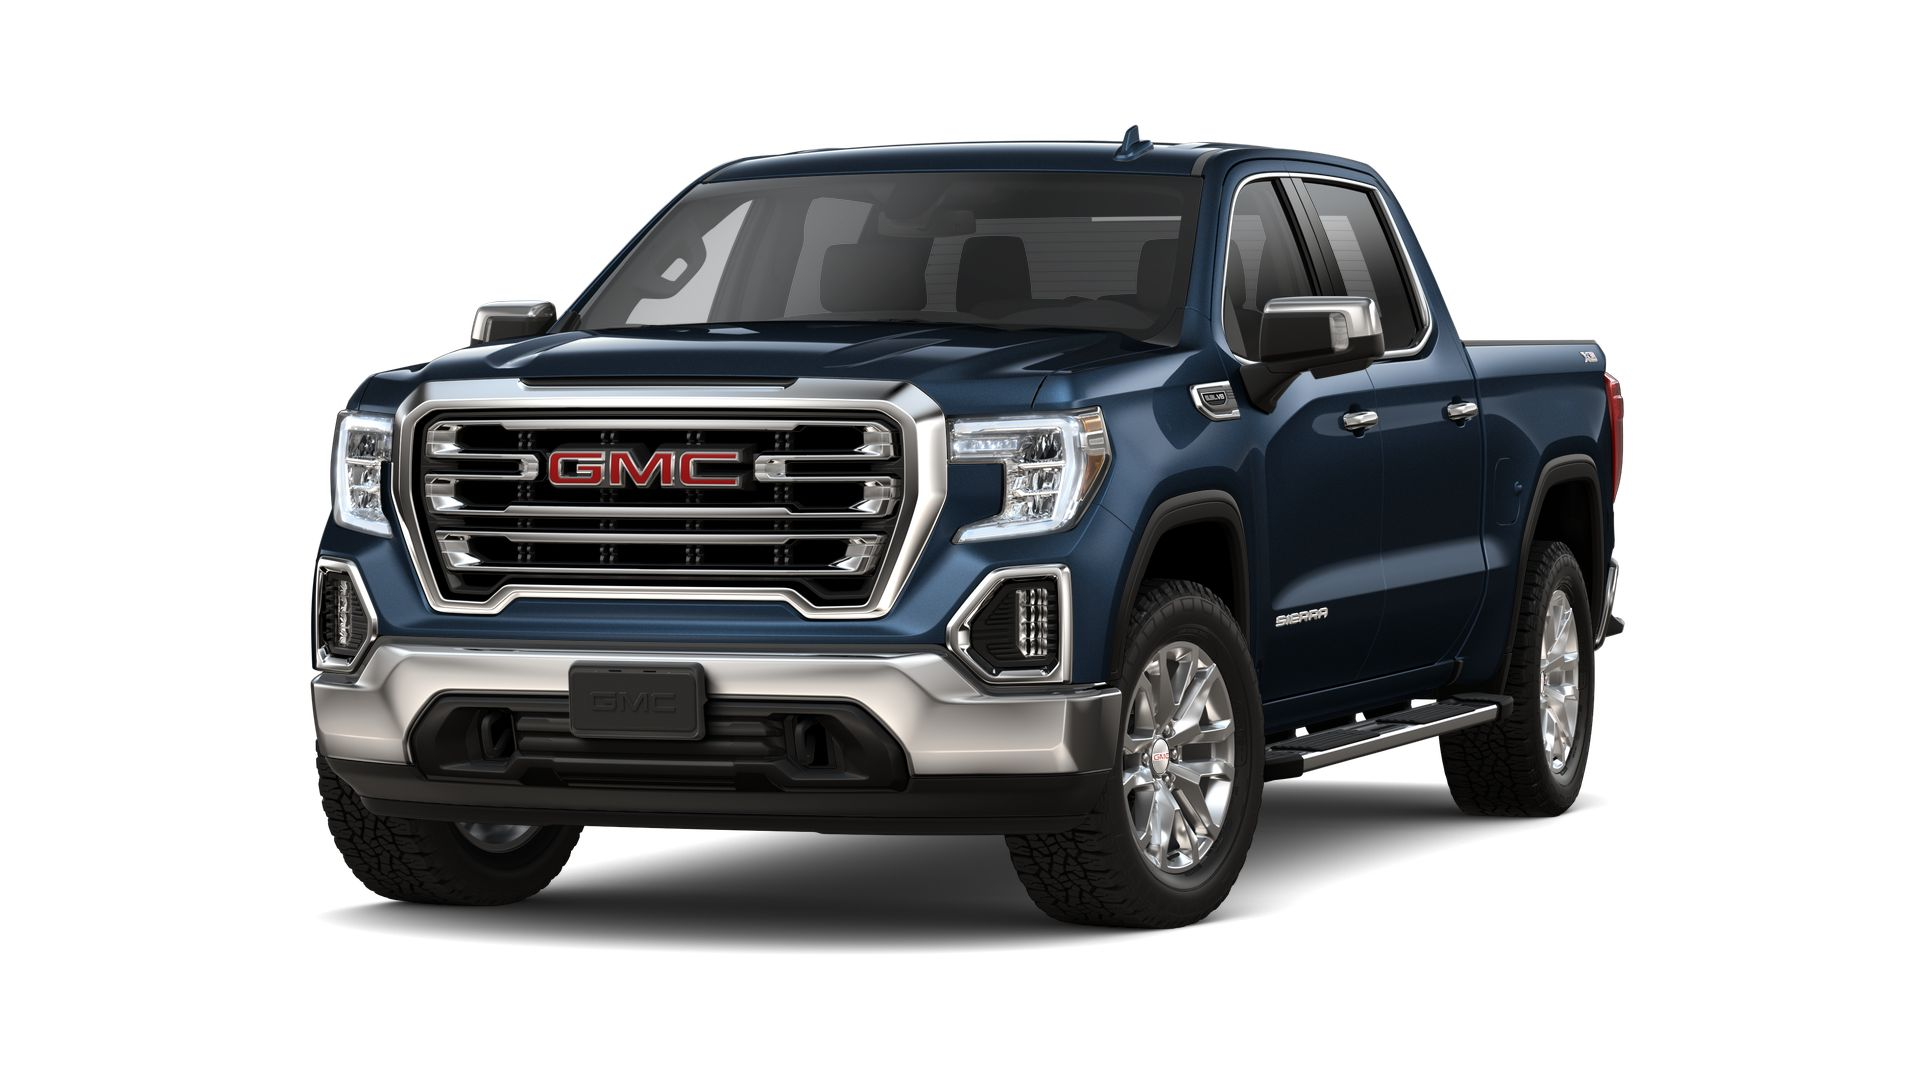 New 2021 GMC Sierra 1500 SLT FOUR WHEEL DRIVE Crew Cab